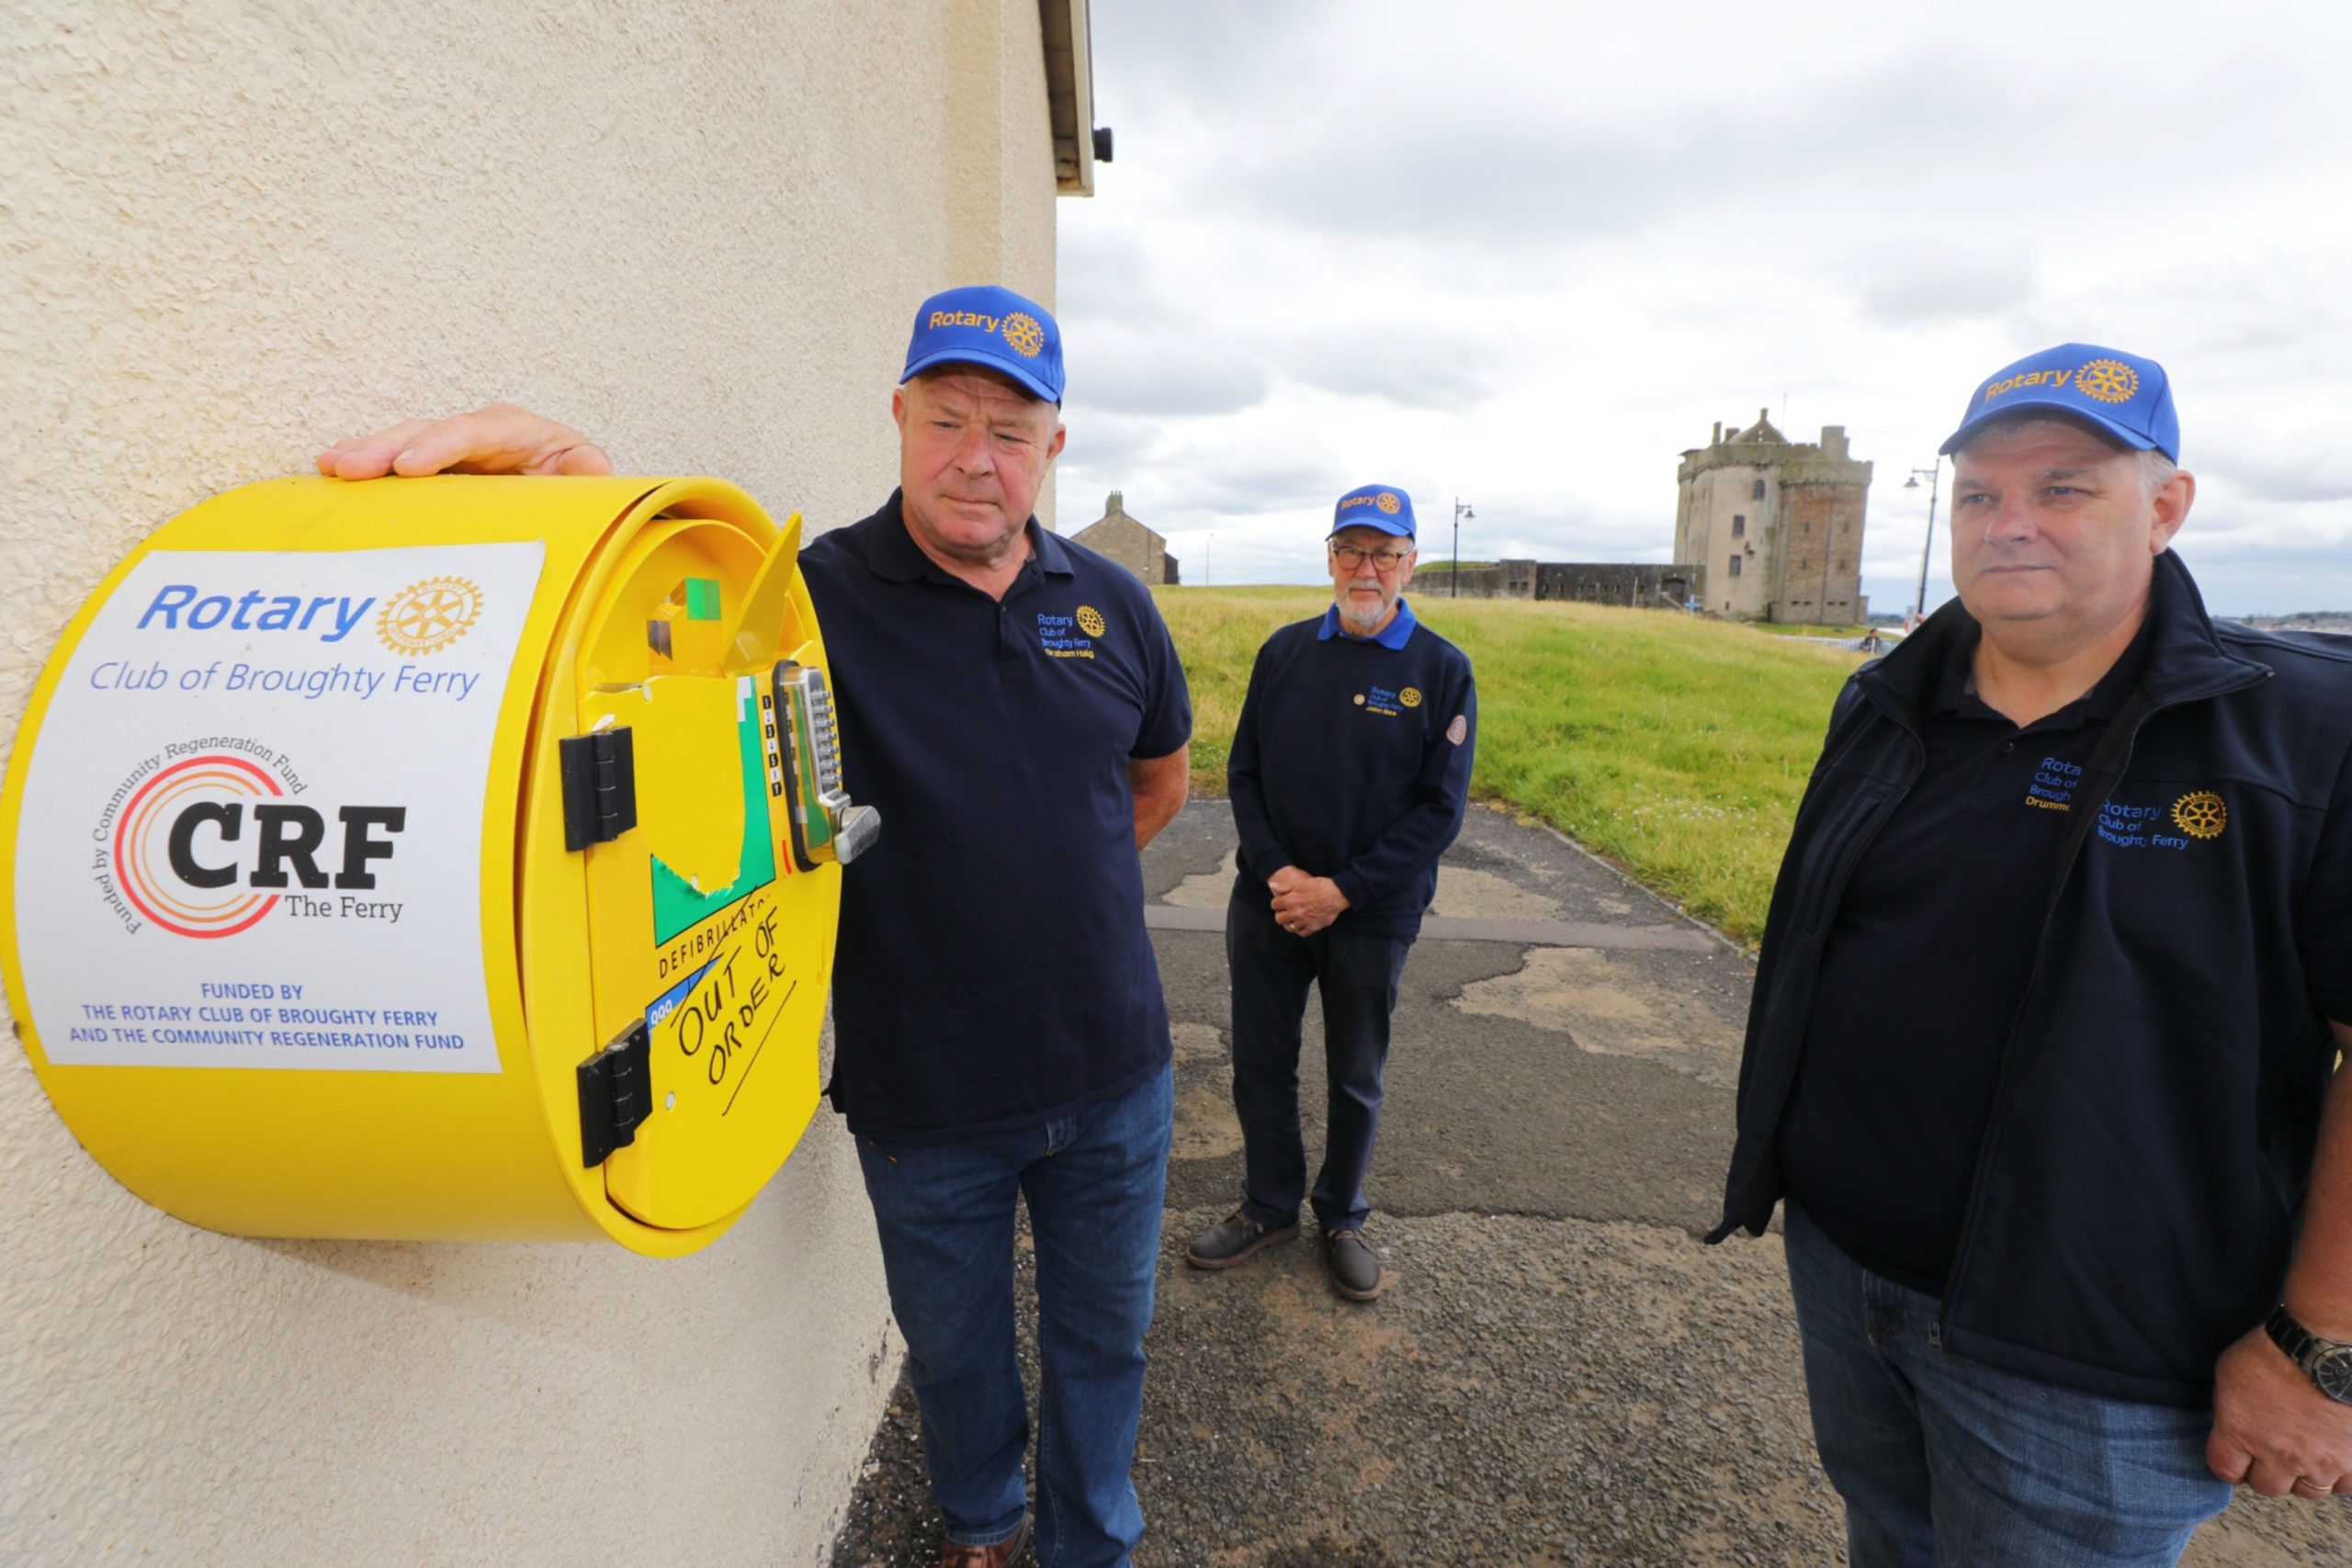 The rotary club has been inundated with offers of support after the defibrillator was vandalised. (Picture: Dougie Nicolson / DCT Media.)